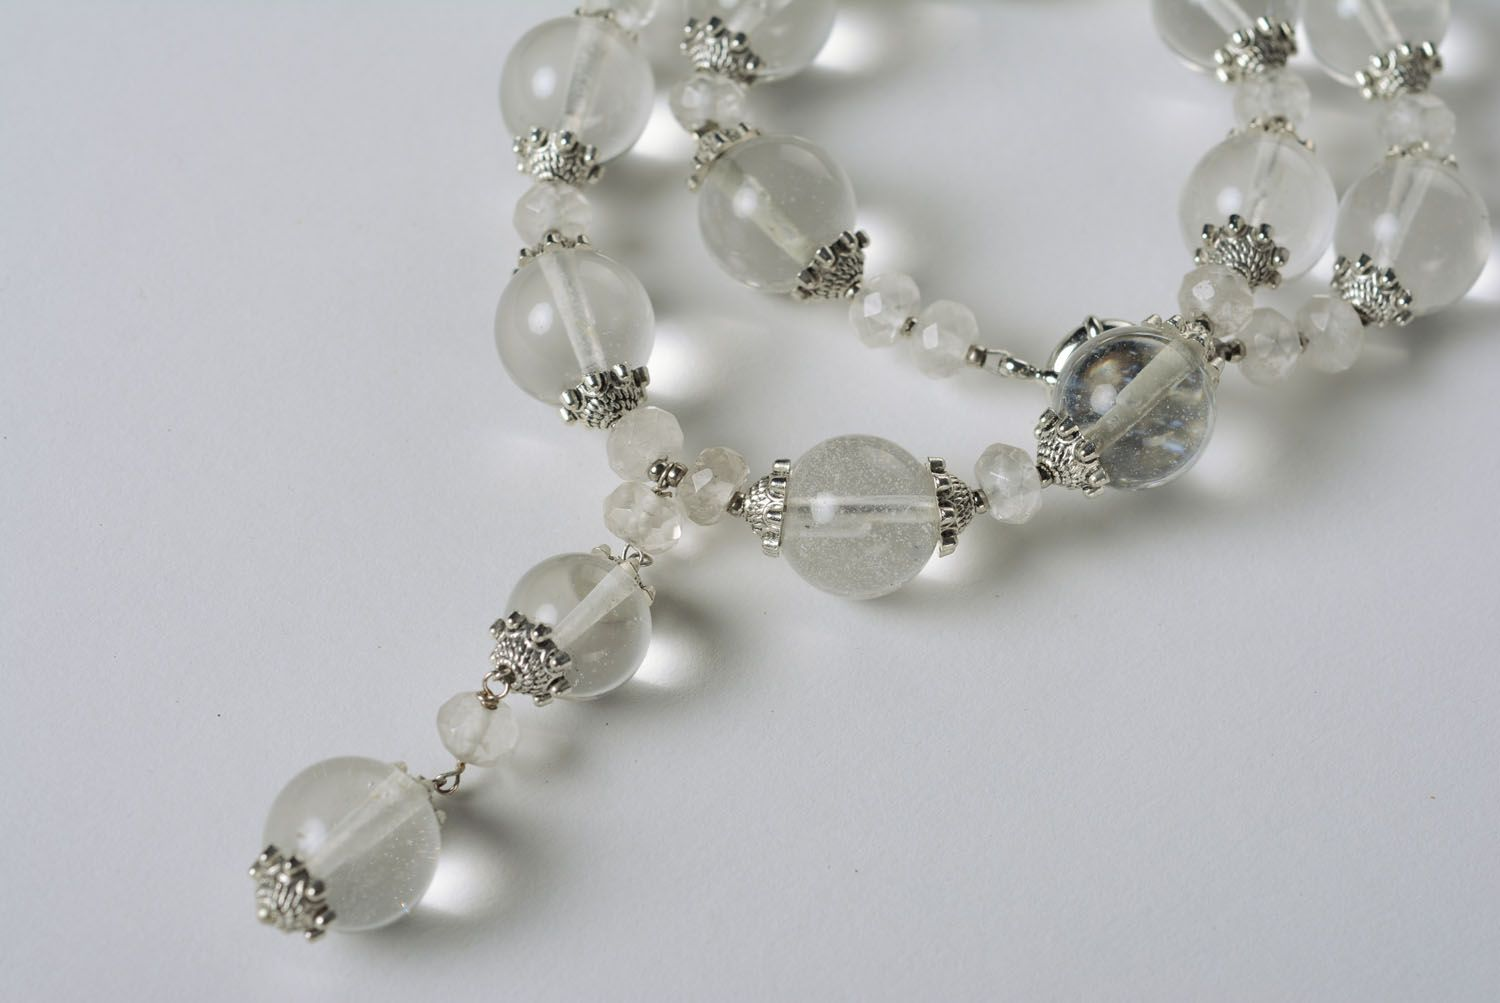 Author's necklace made of rock crystal photo 3